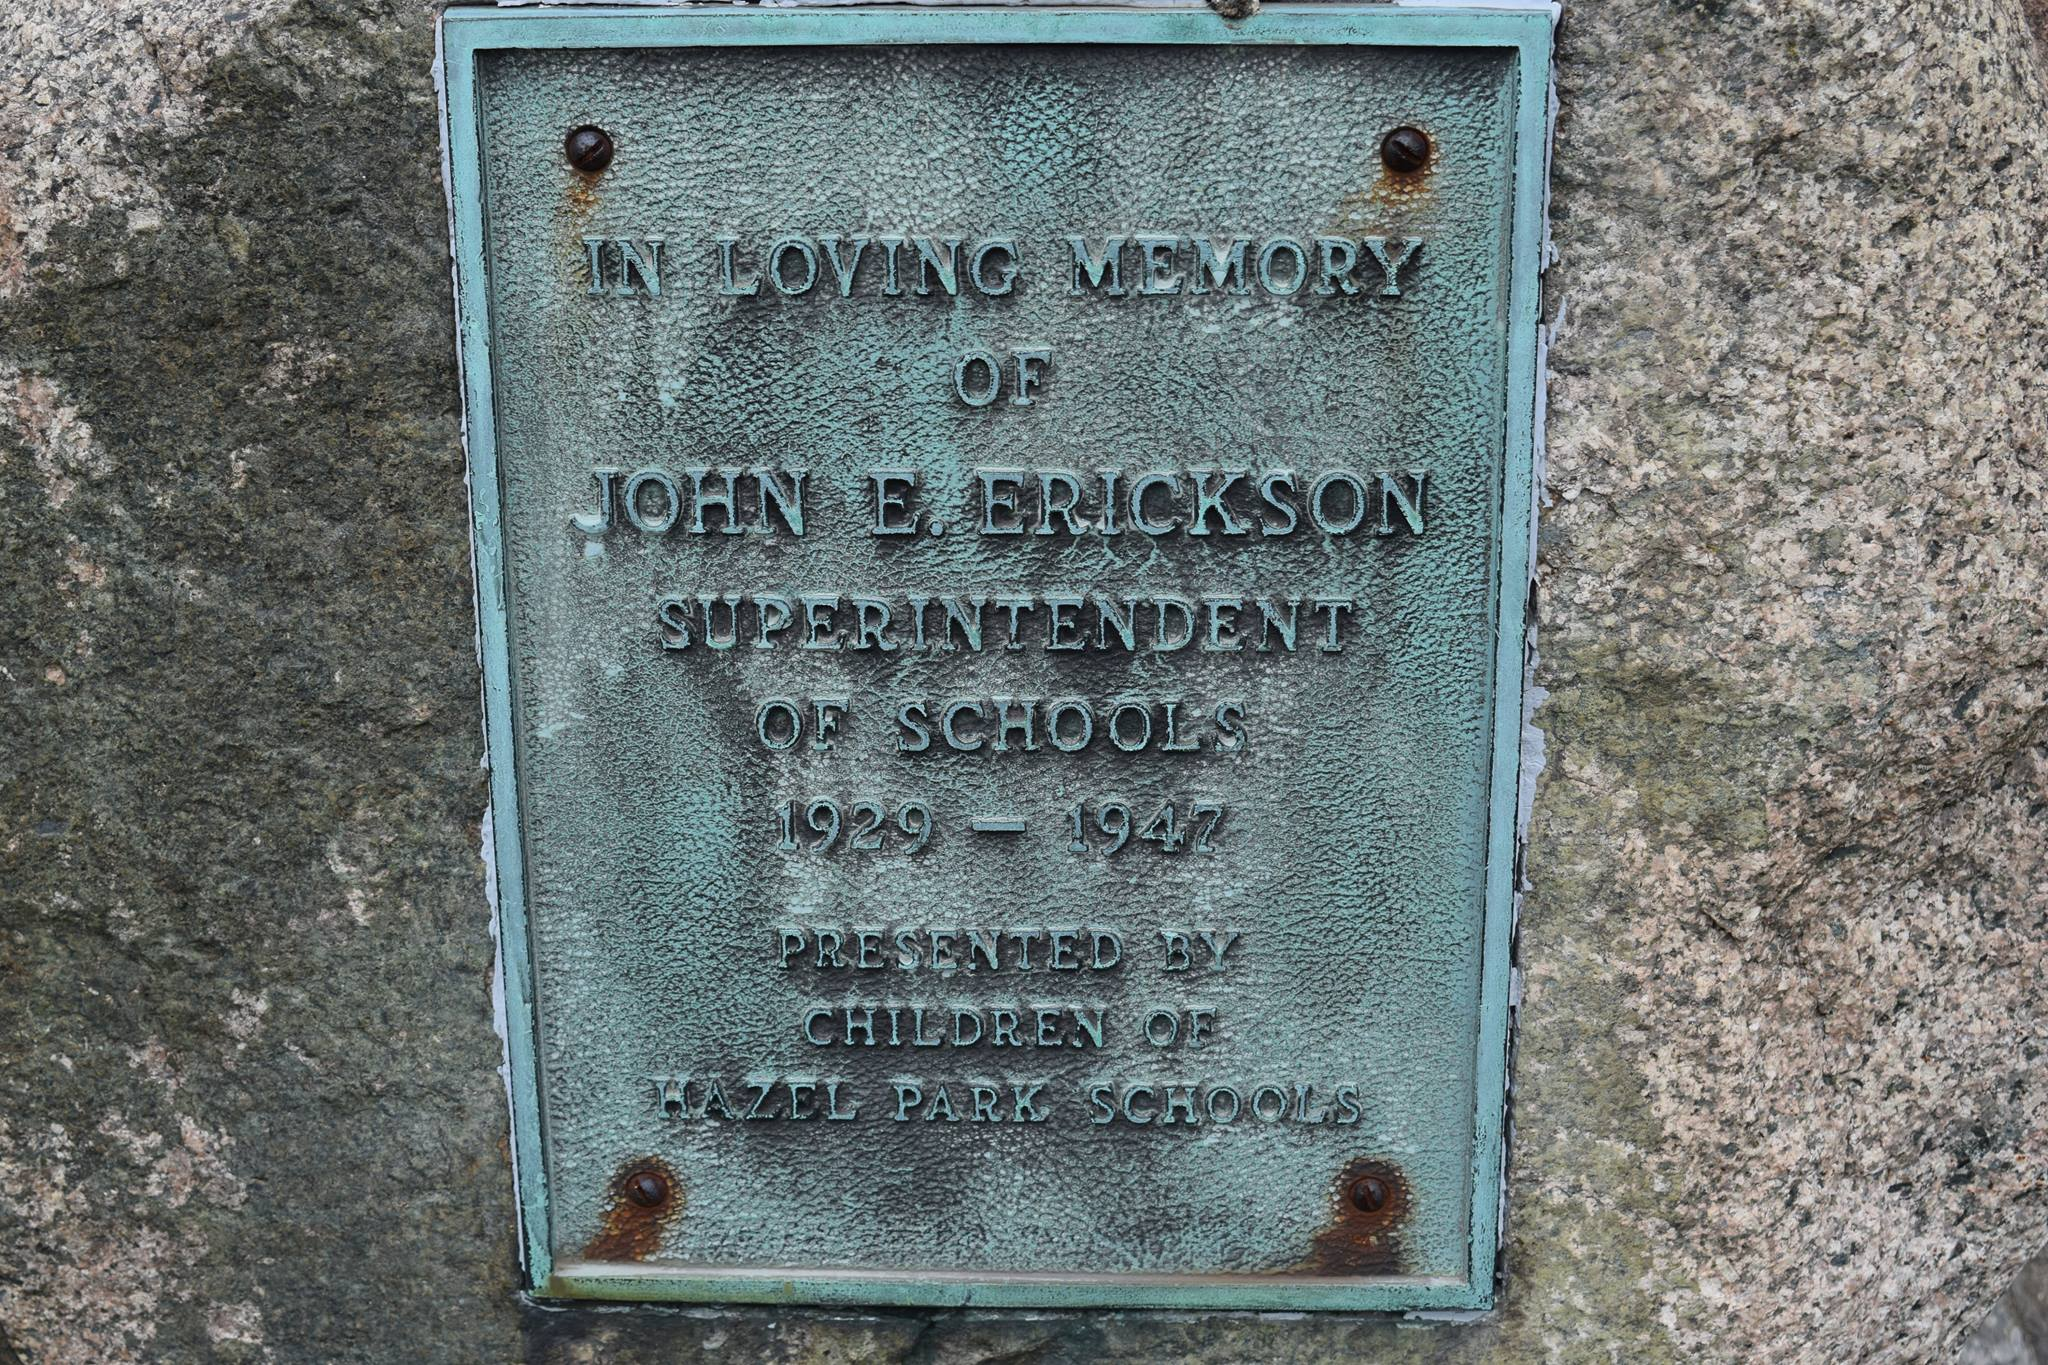 Plaque in front of the Hazel Park Historical Museum, dedicating what was the Hazel Park Library in honor of John E. Erickson, who spearheaded the creation of a public Library in Hazel Park, Michigan.